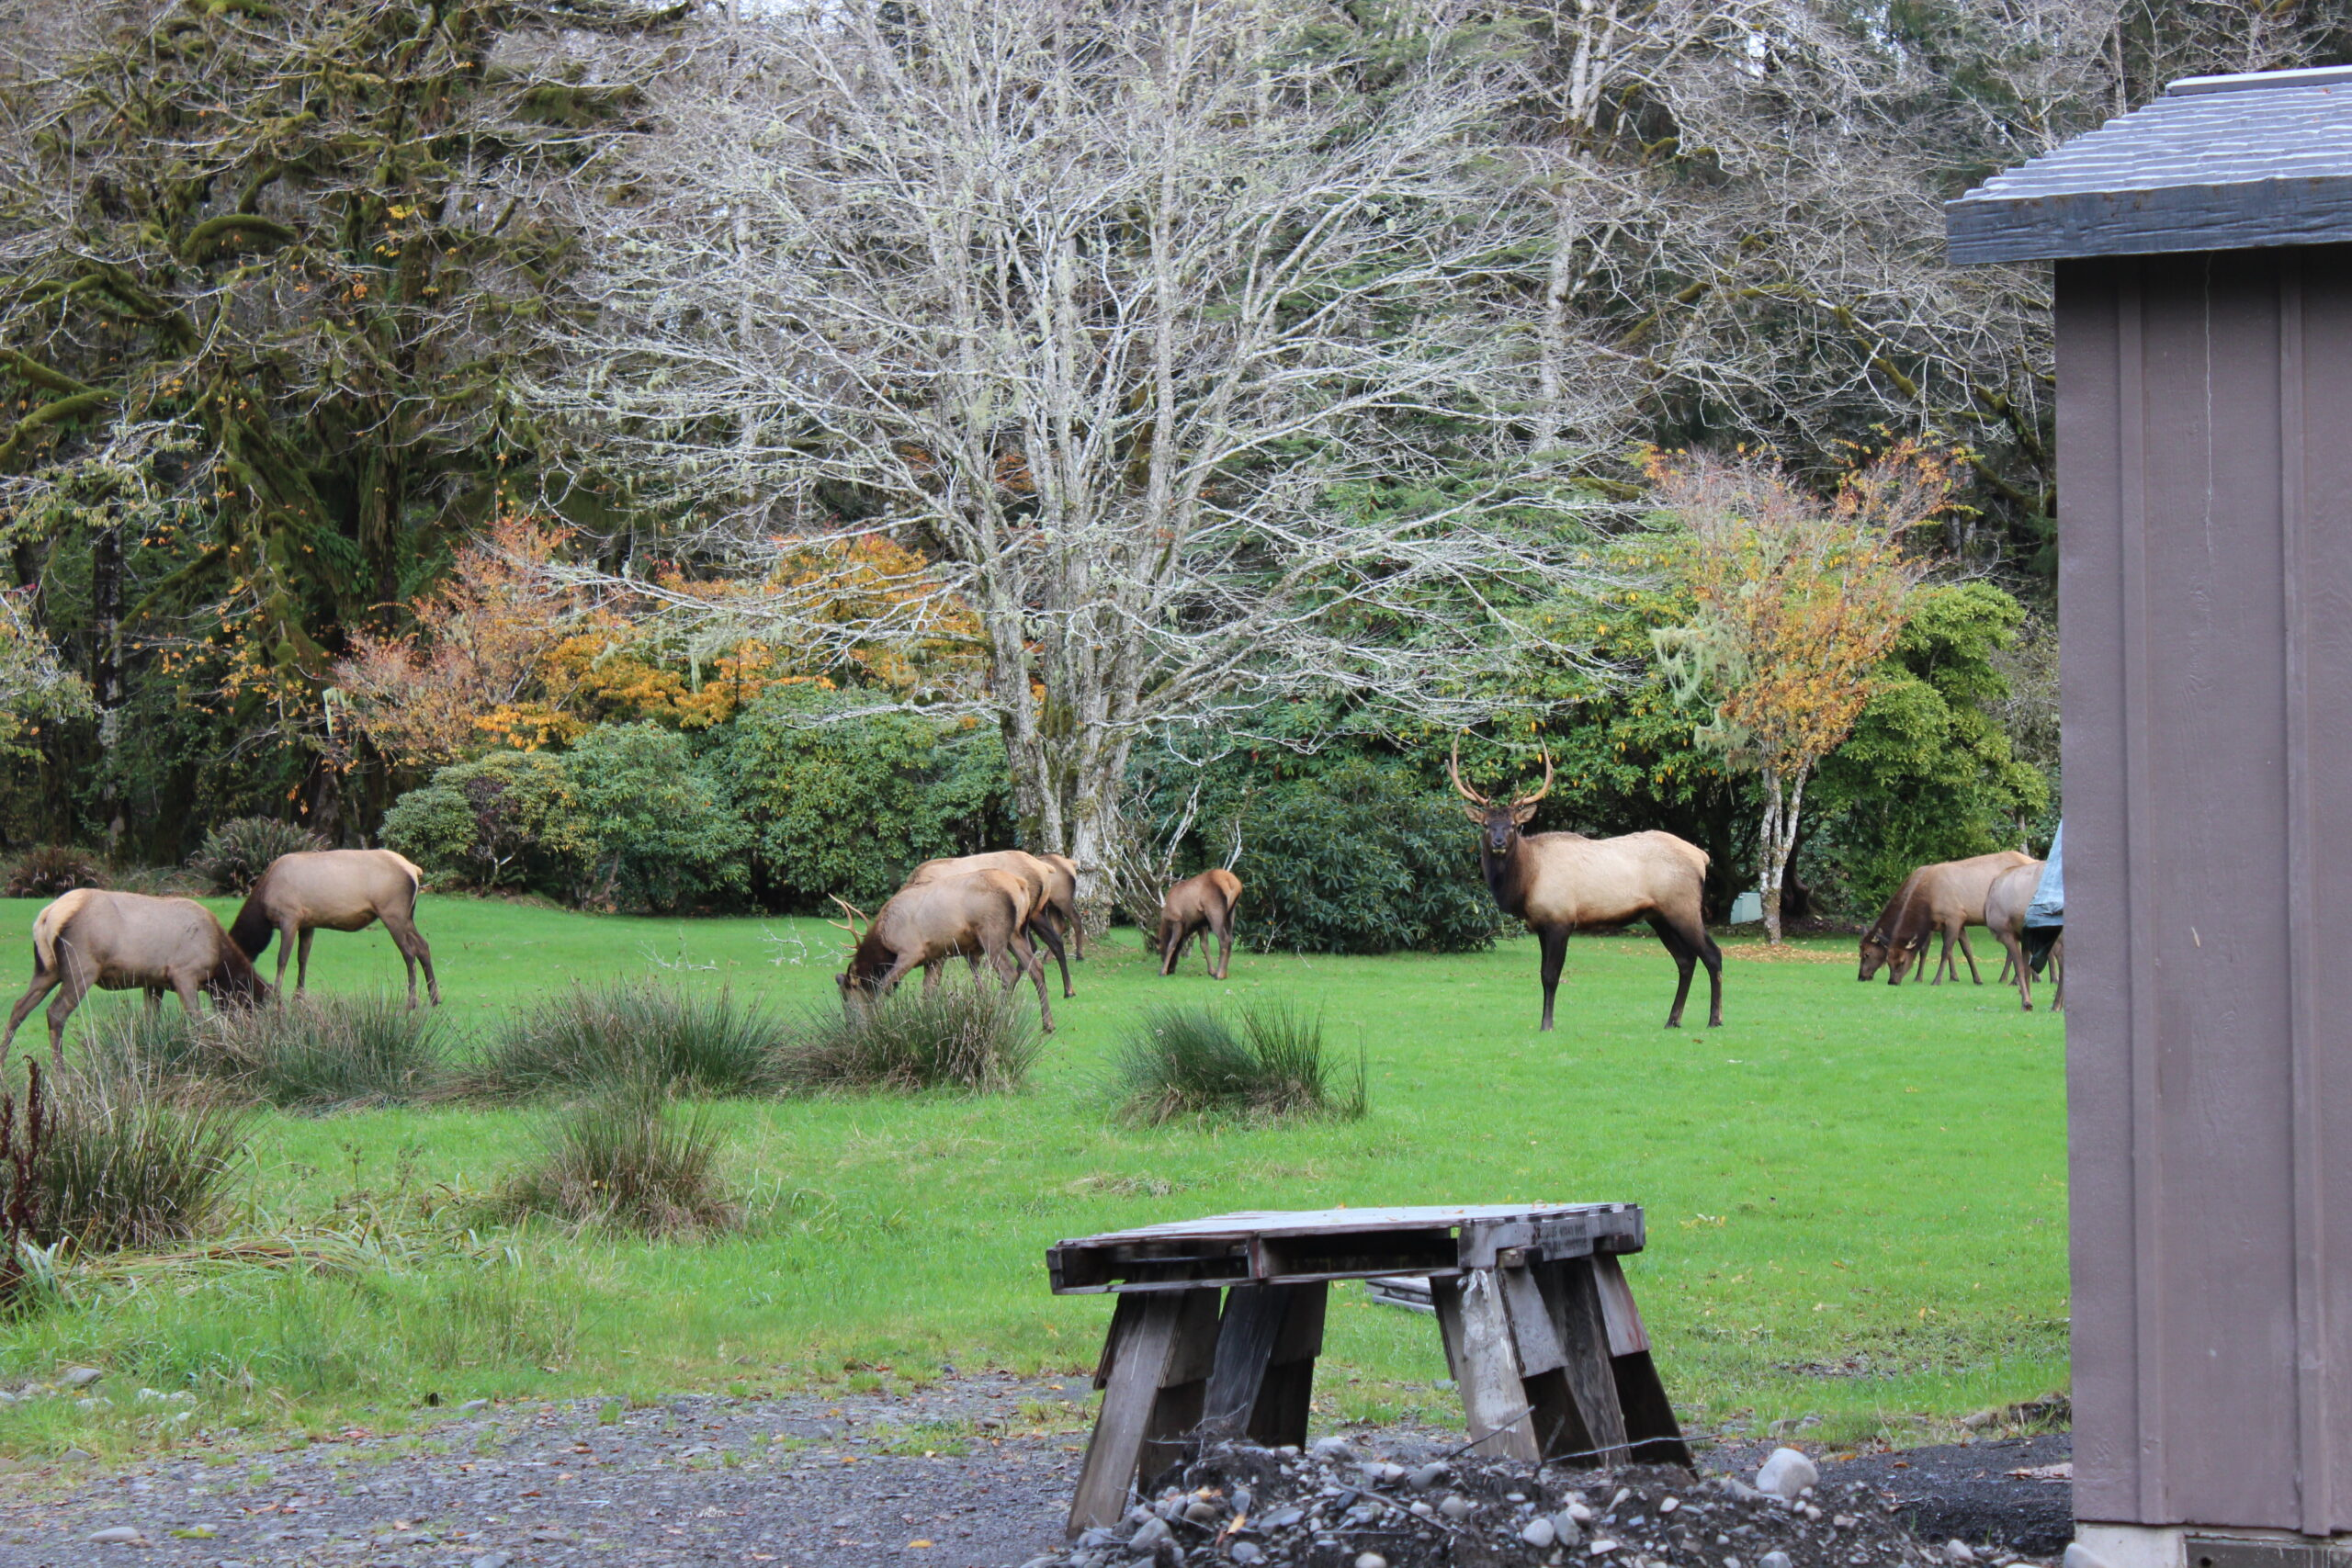 Elk graze in a green lawn near trees with autumn leaves.